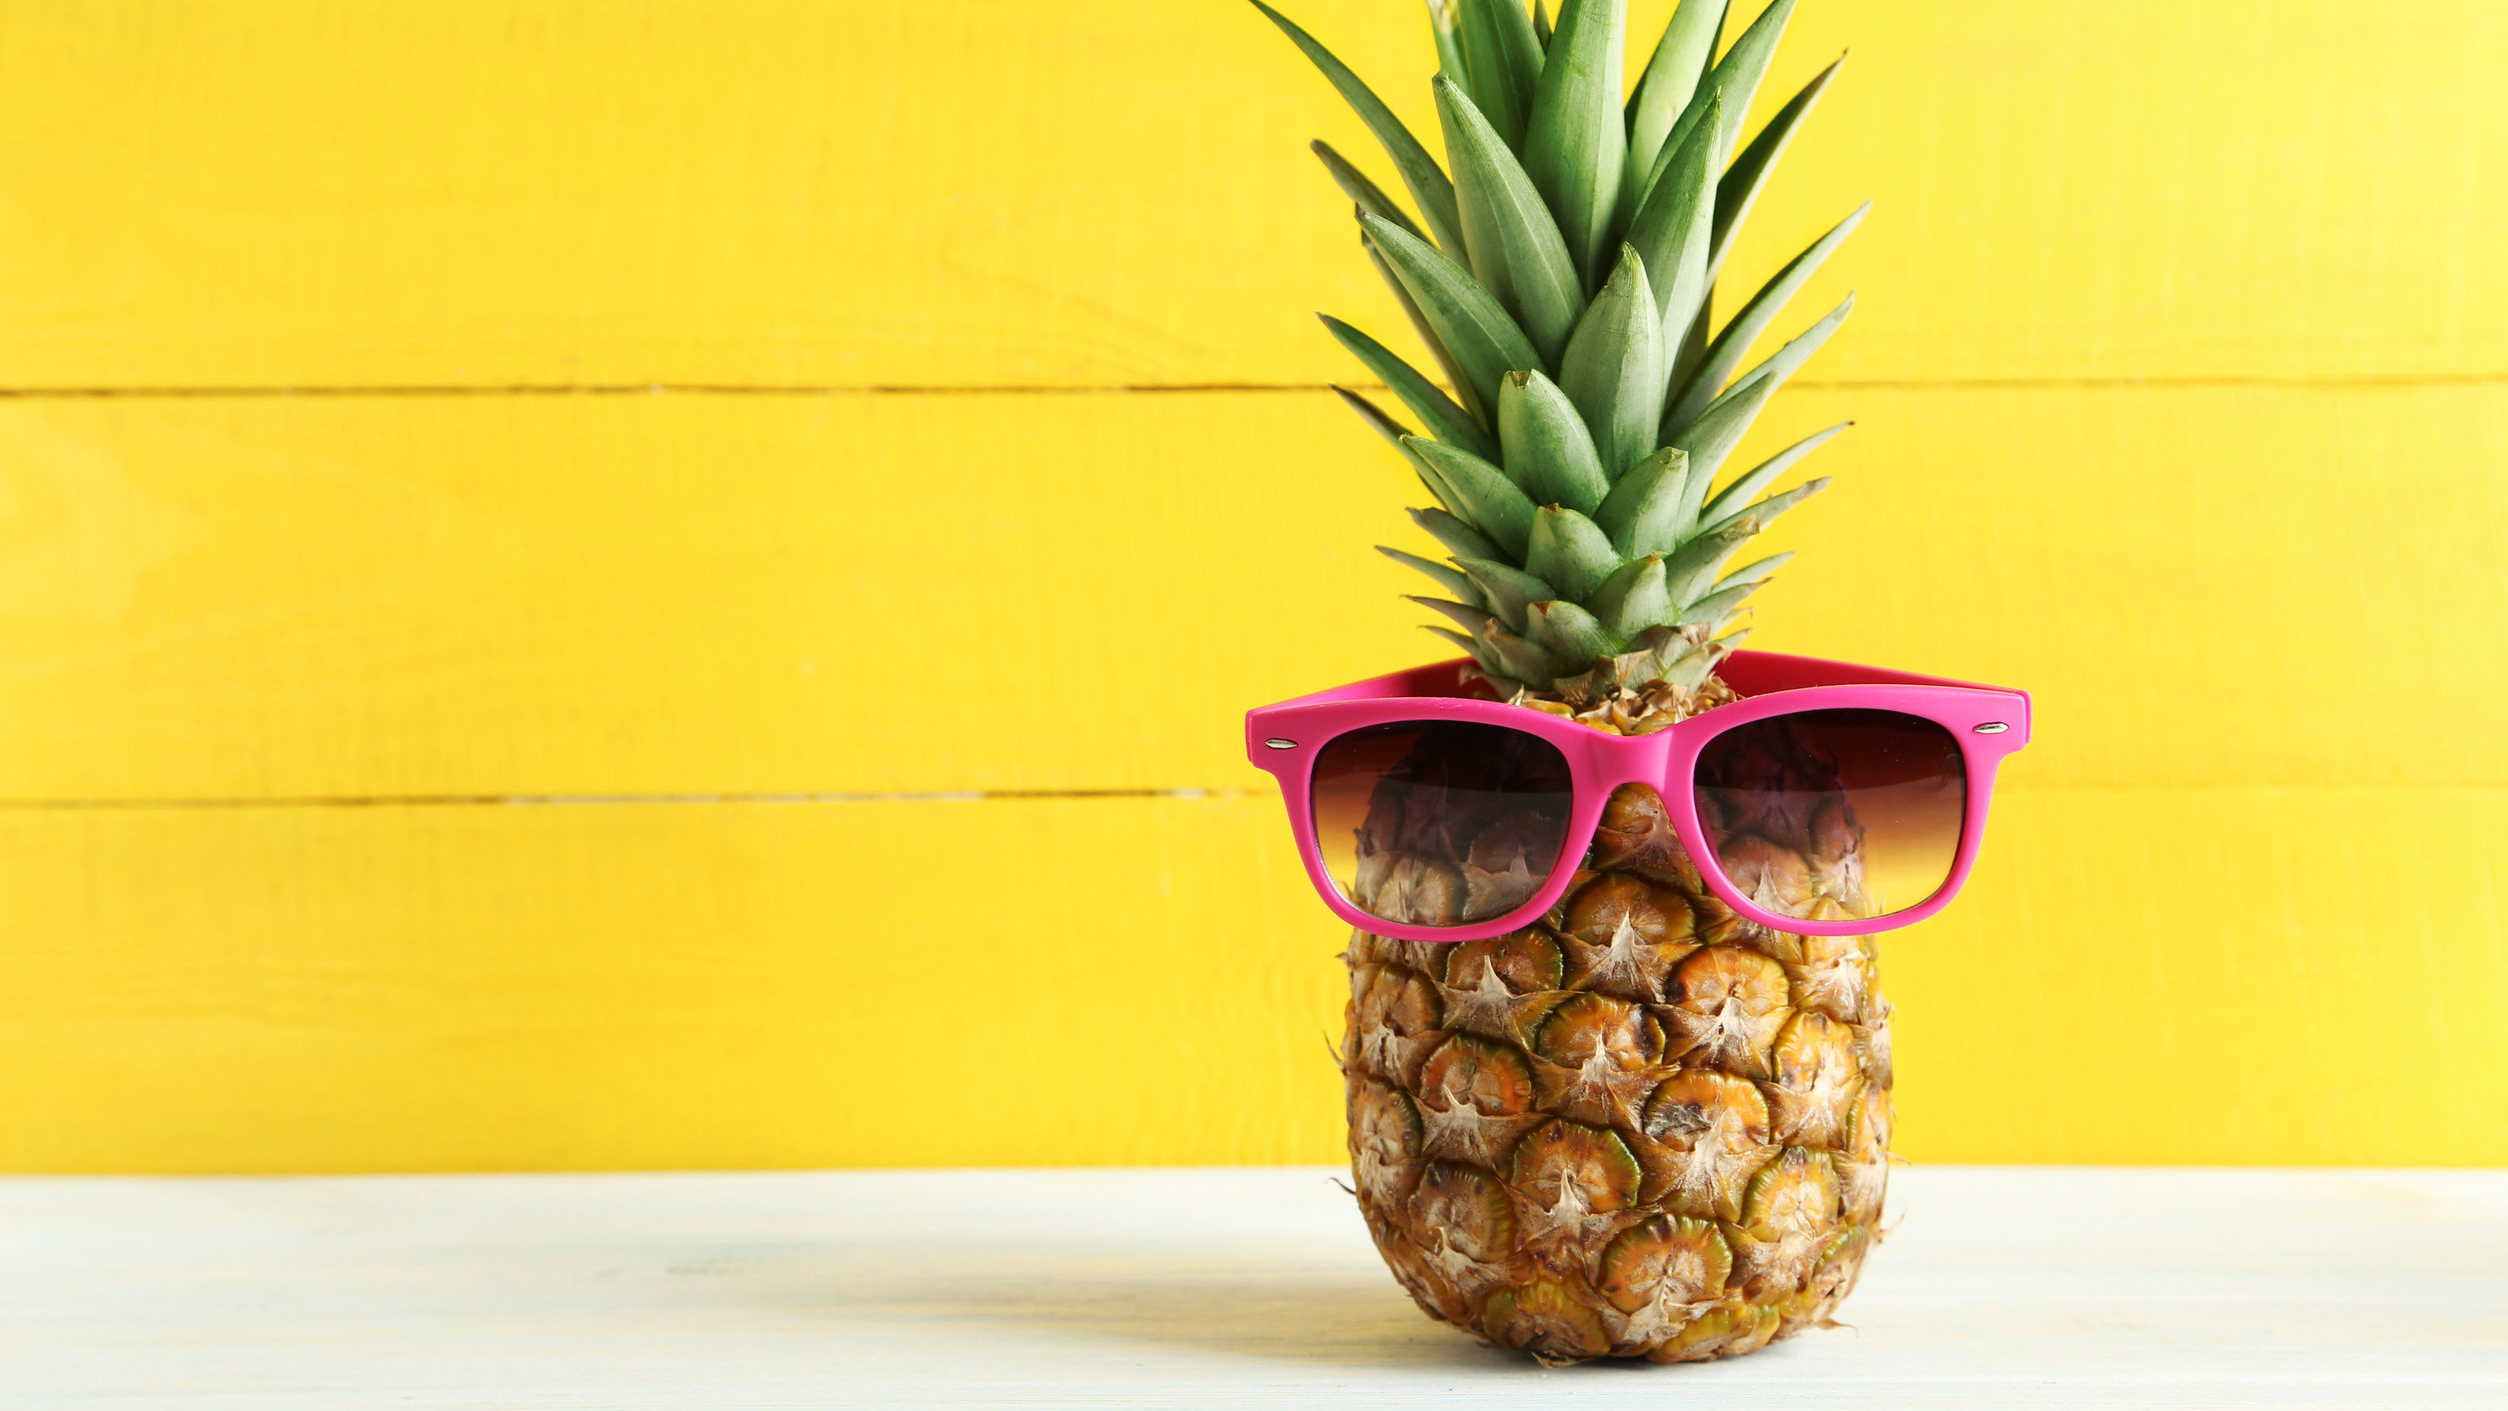 8 Things You Didn't Know About Pineapples